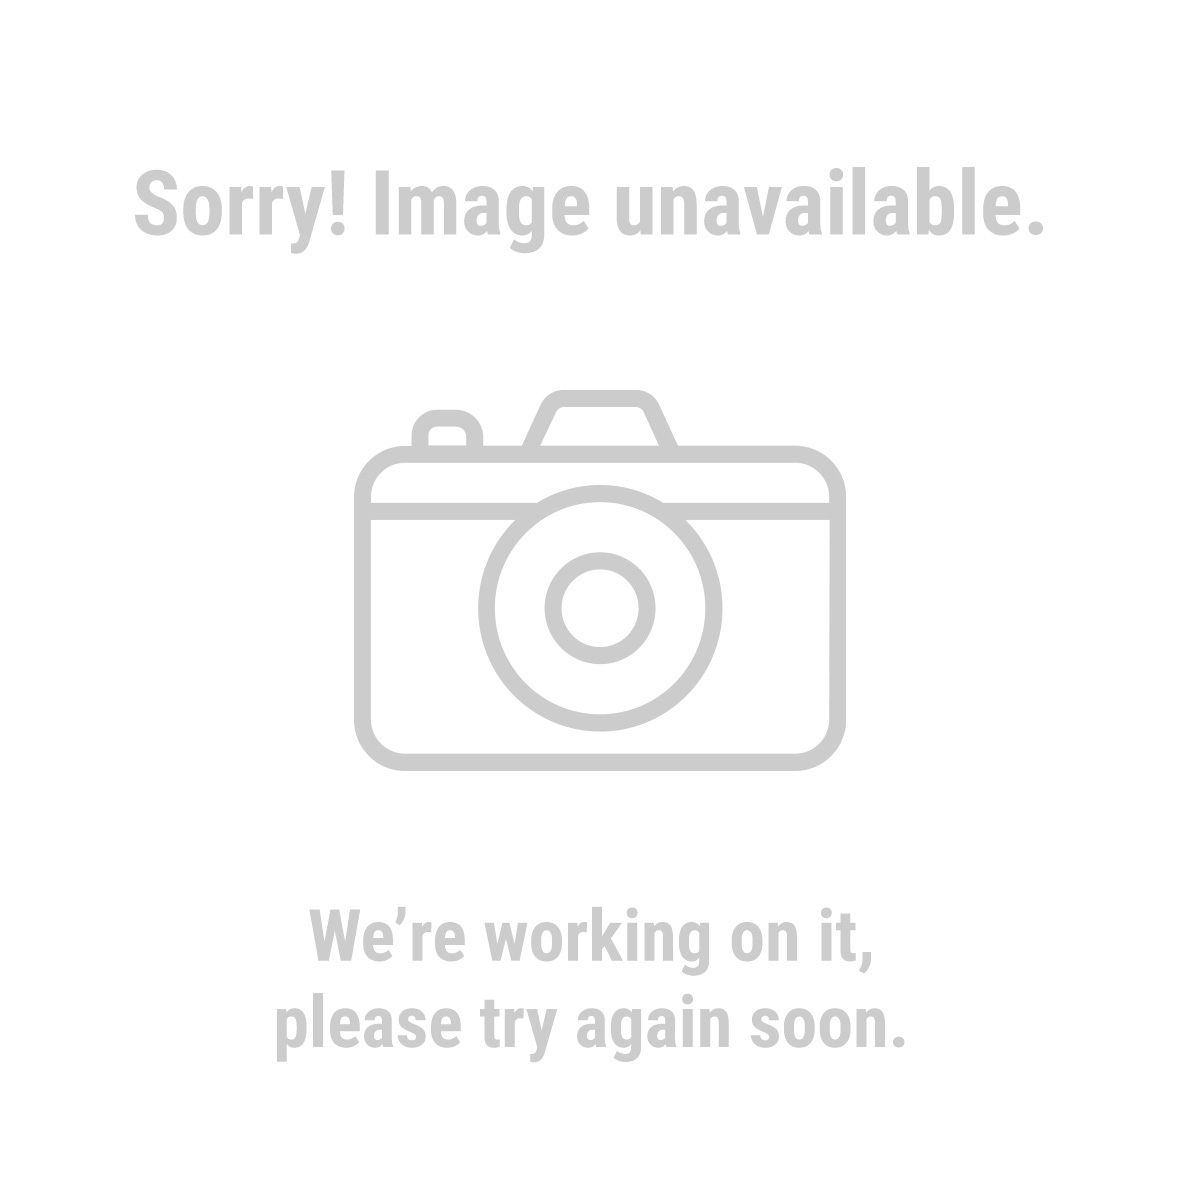 HFT 61580 50 Piece Trash Bags - 55 gal.